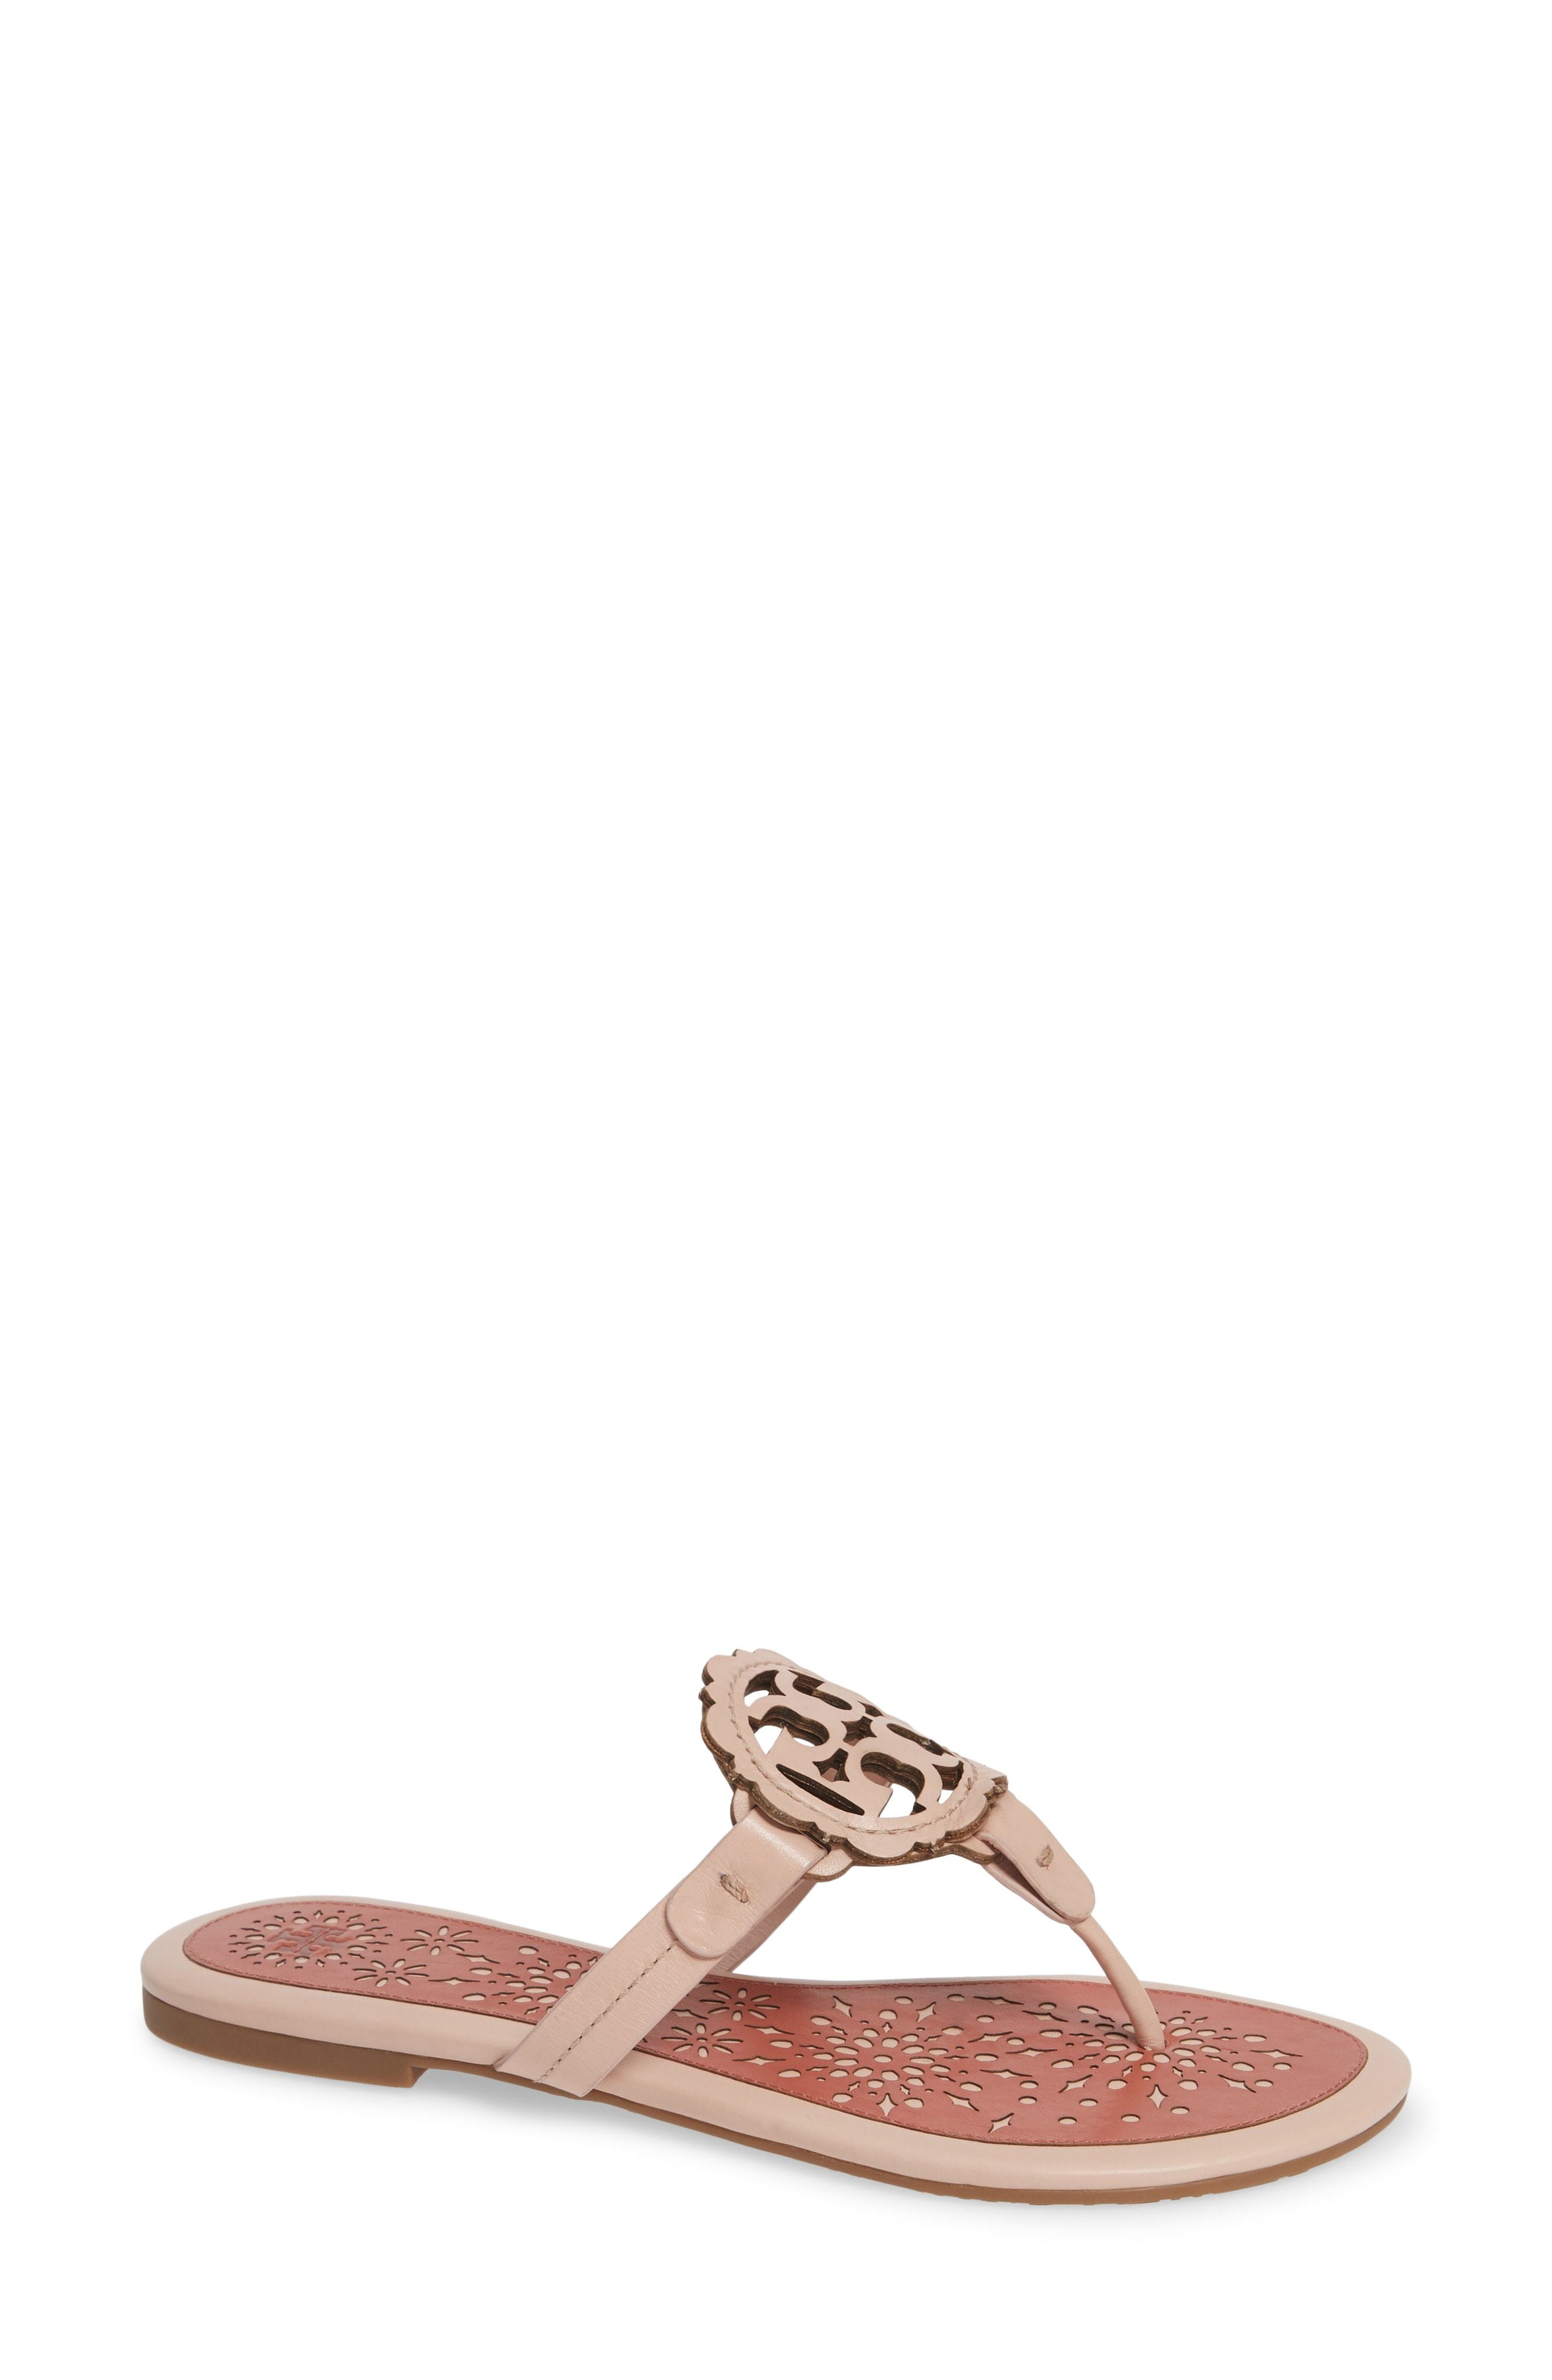 f551dcc82b4 ... Thong Sandals Tory Burch Miller Scalloped Medallion Sandal